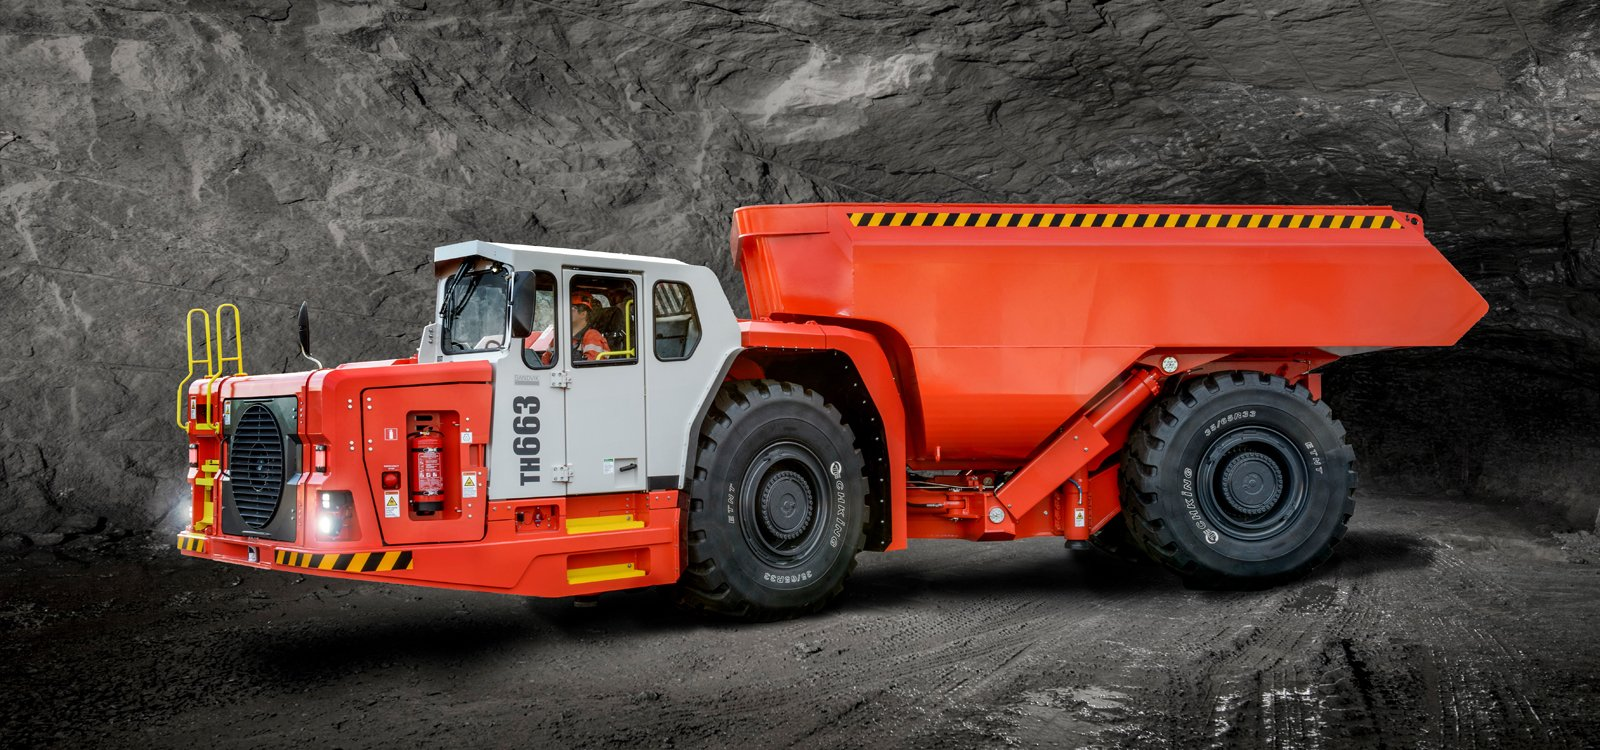 <p>Australia's FMR Investments chose financing from Sandvik when it purchased a new fleet of trucks for its Eloise site.</p>